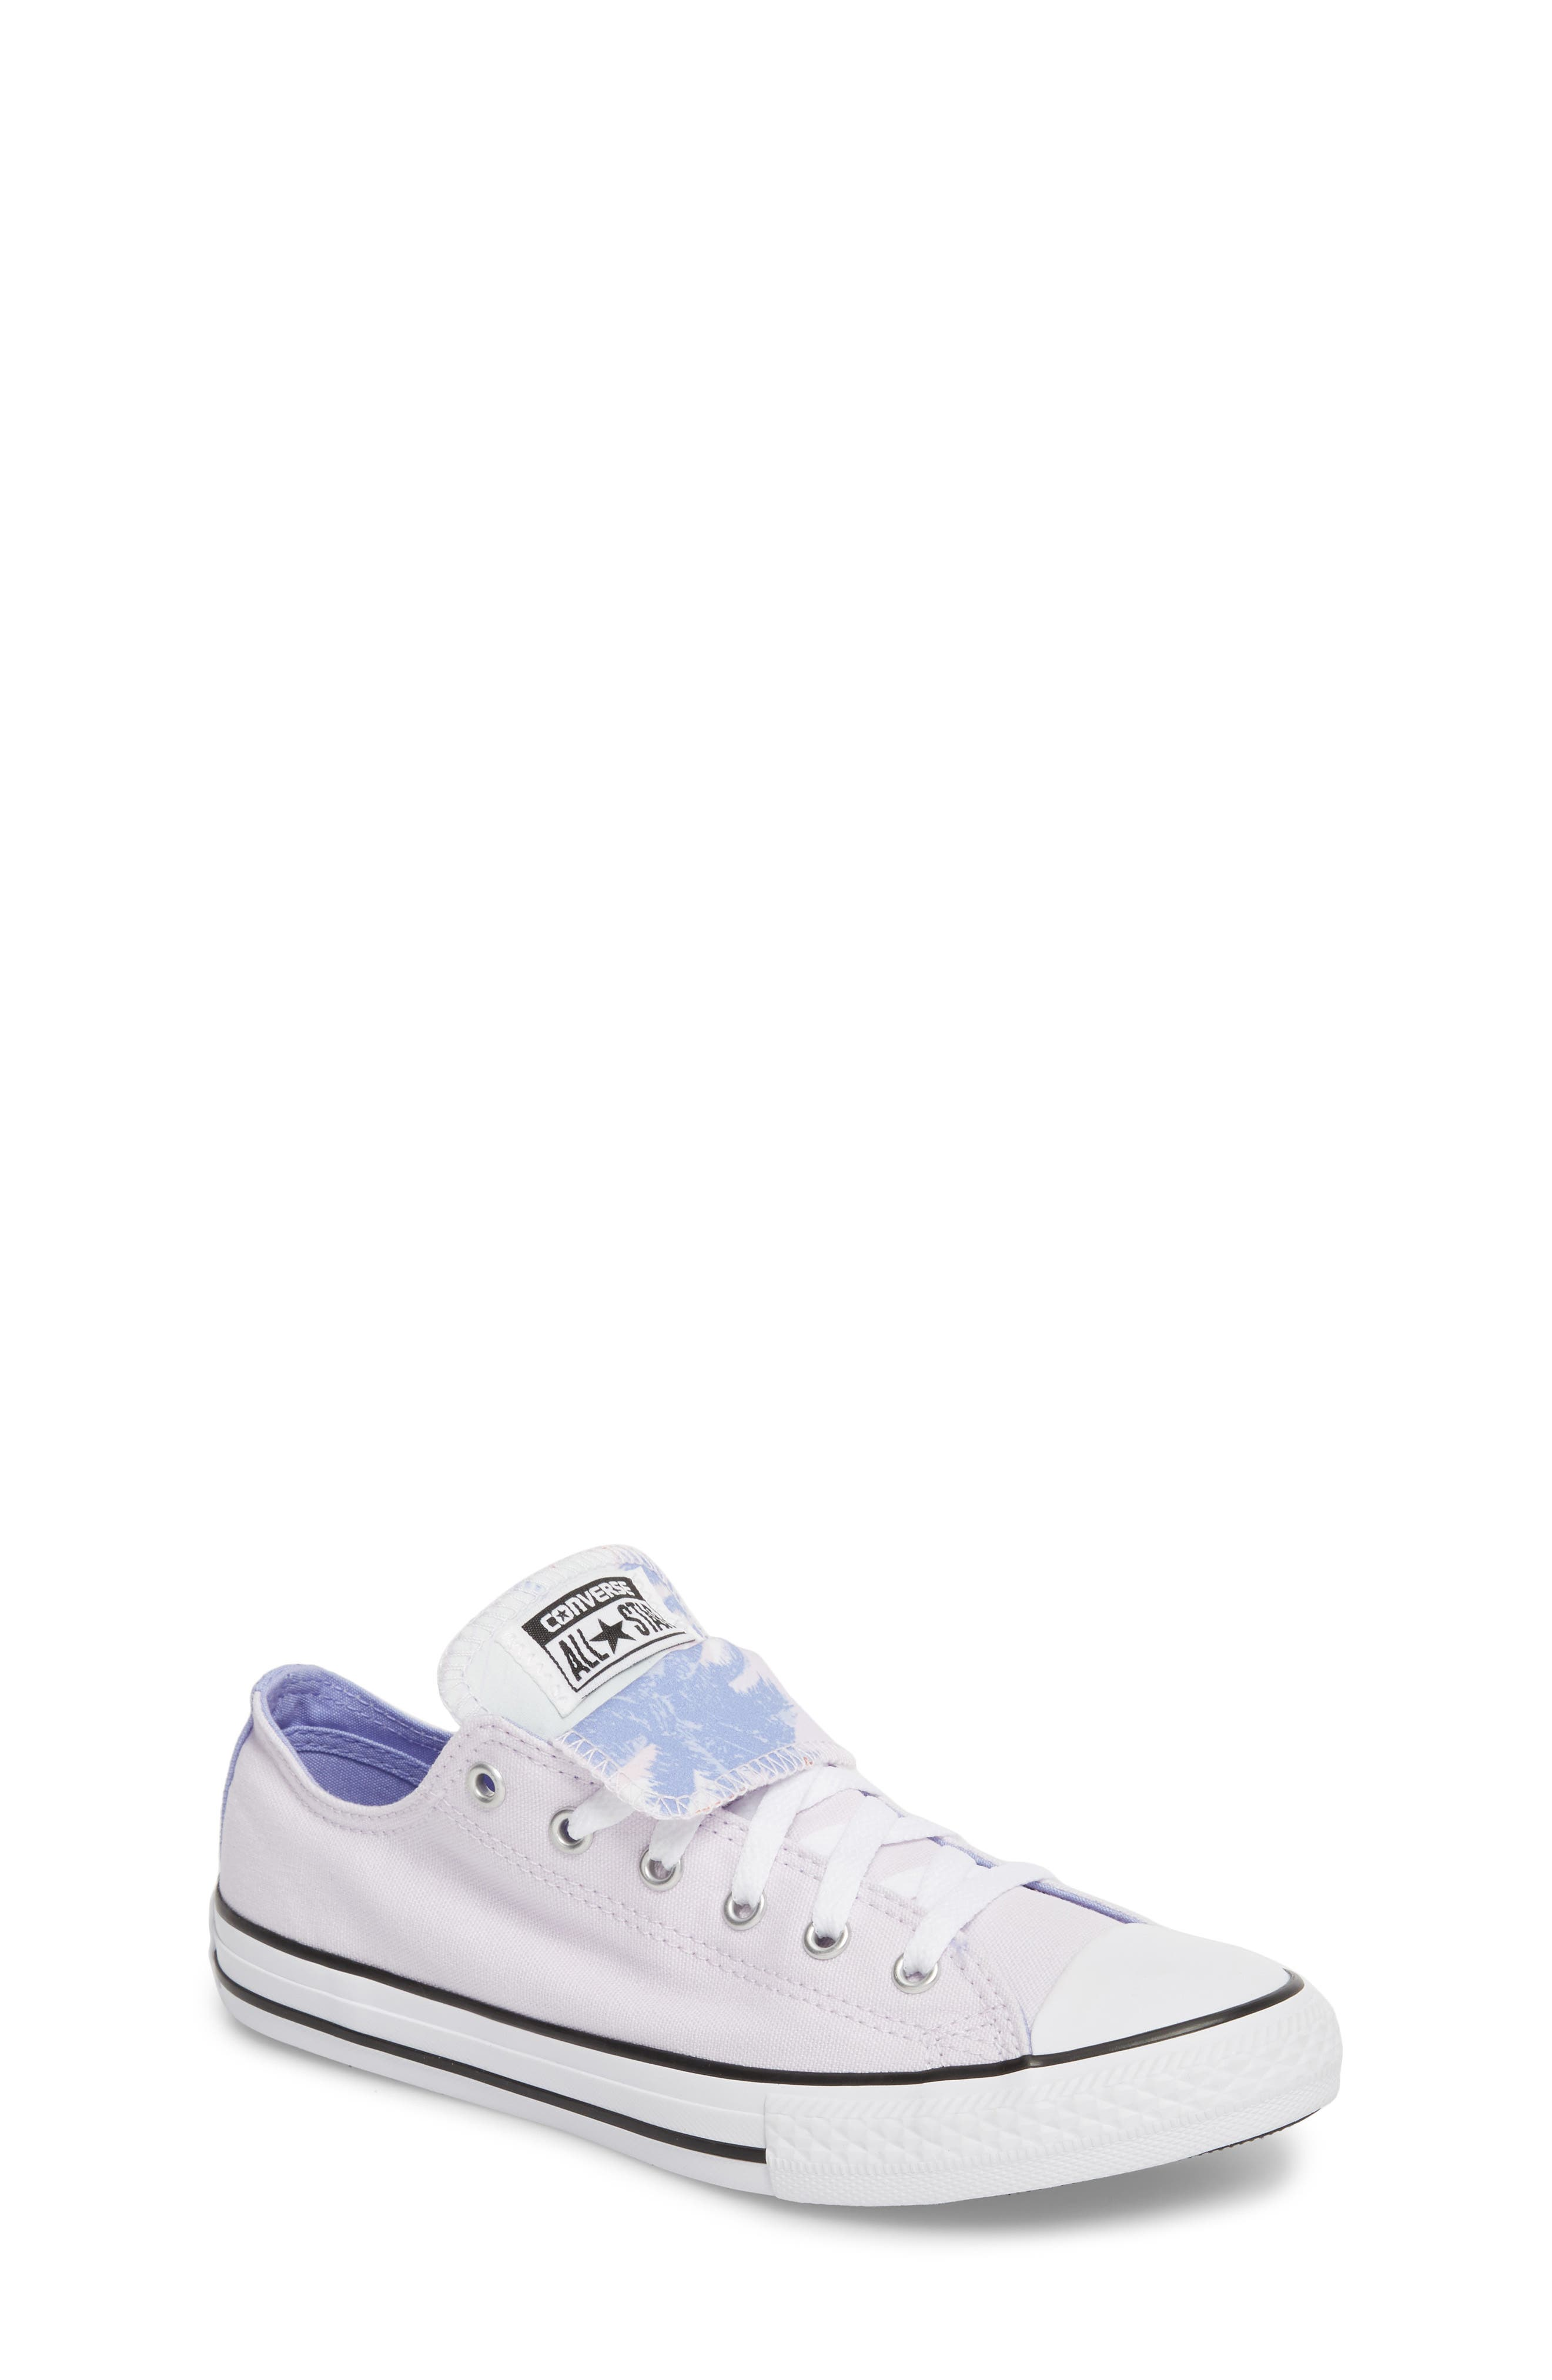 Chuck Taylor<sup>®</sup> All Star<sup>®</sup> Palm Tree Double Tongue Low Top Sneaker,                             Main thumbnail 1, color,                             Barely Grape